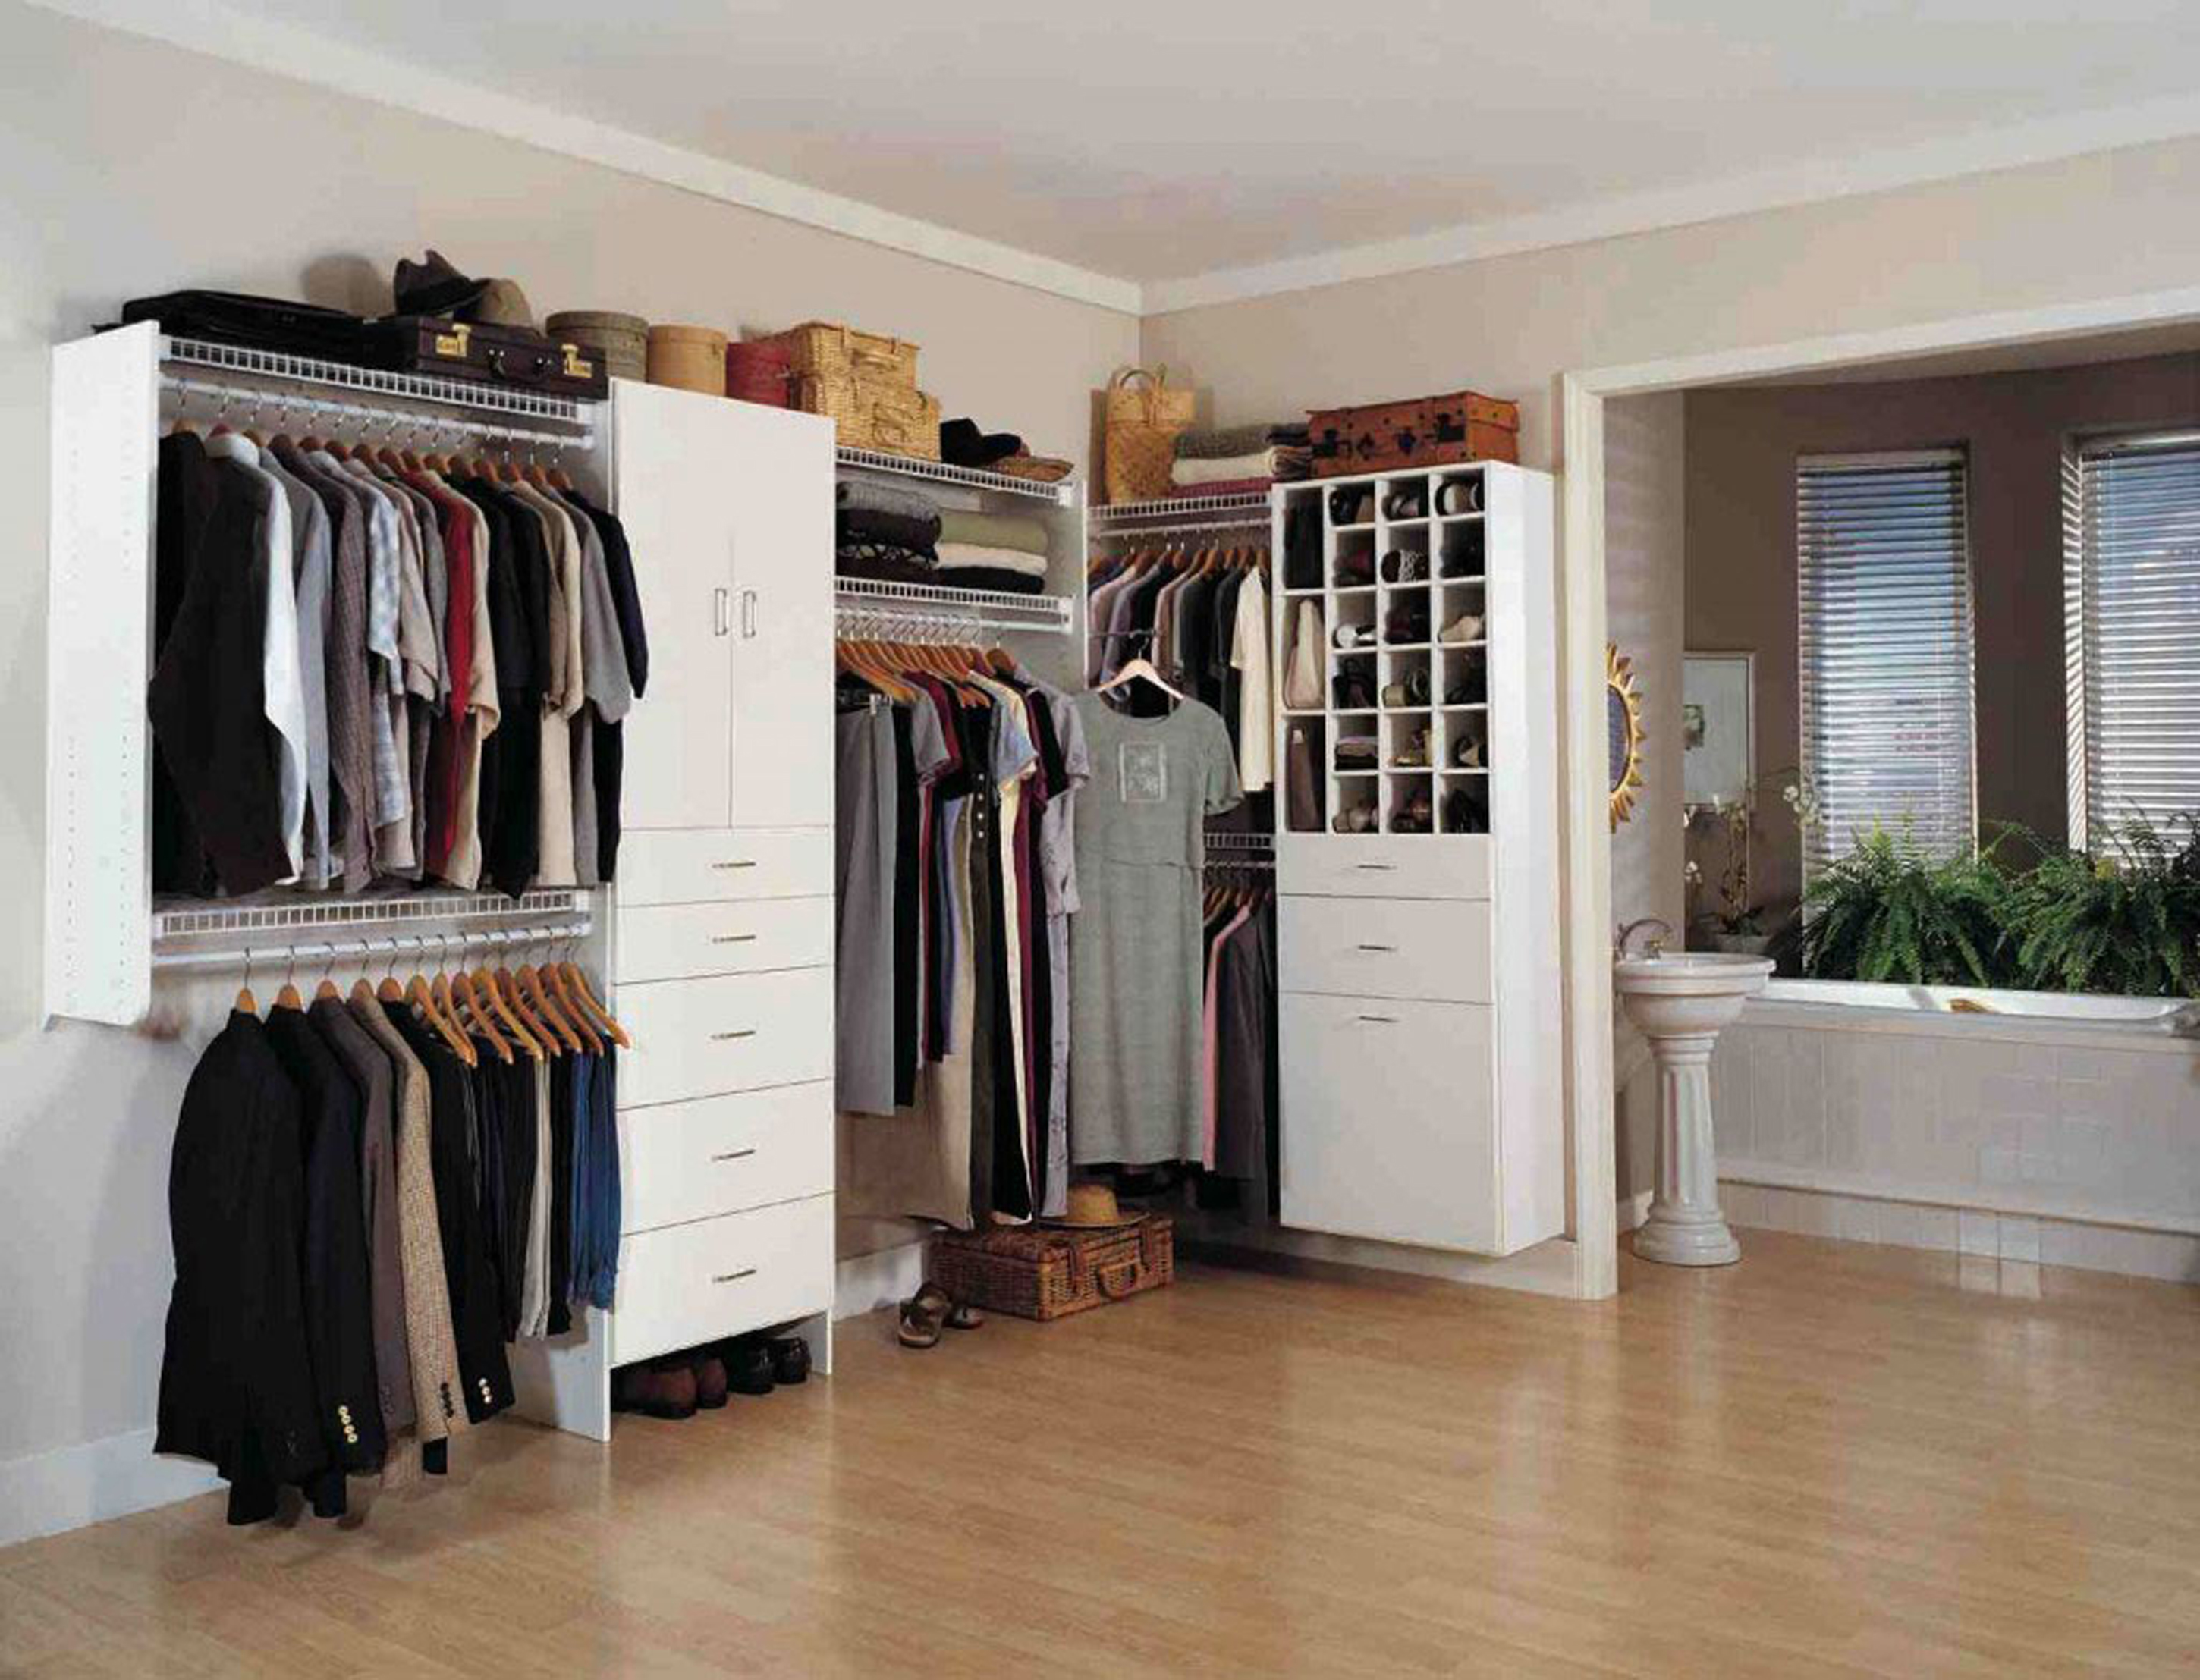 Creative-Modern-Walk-In-Closet-Design-Idea-In-White-With-Shoe-Storage-White-Drawers-And-Colorful-Clothes-Amazing-Modern-Walk-In-Closet-Design-Ideas